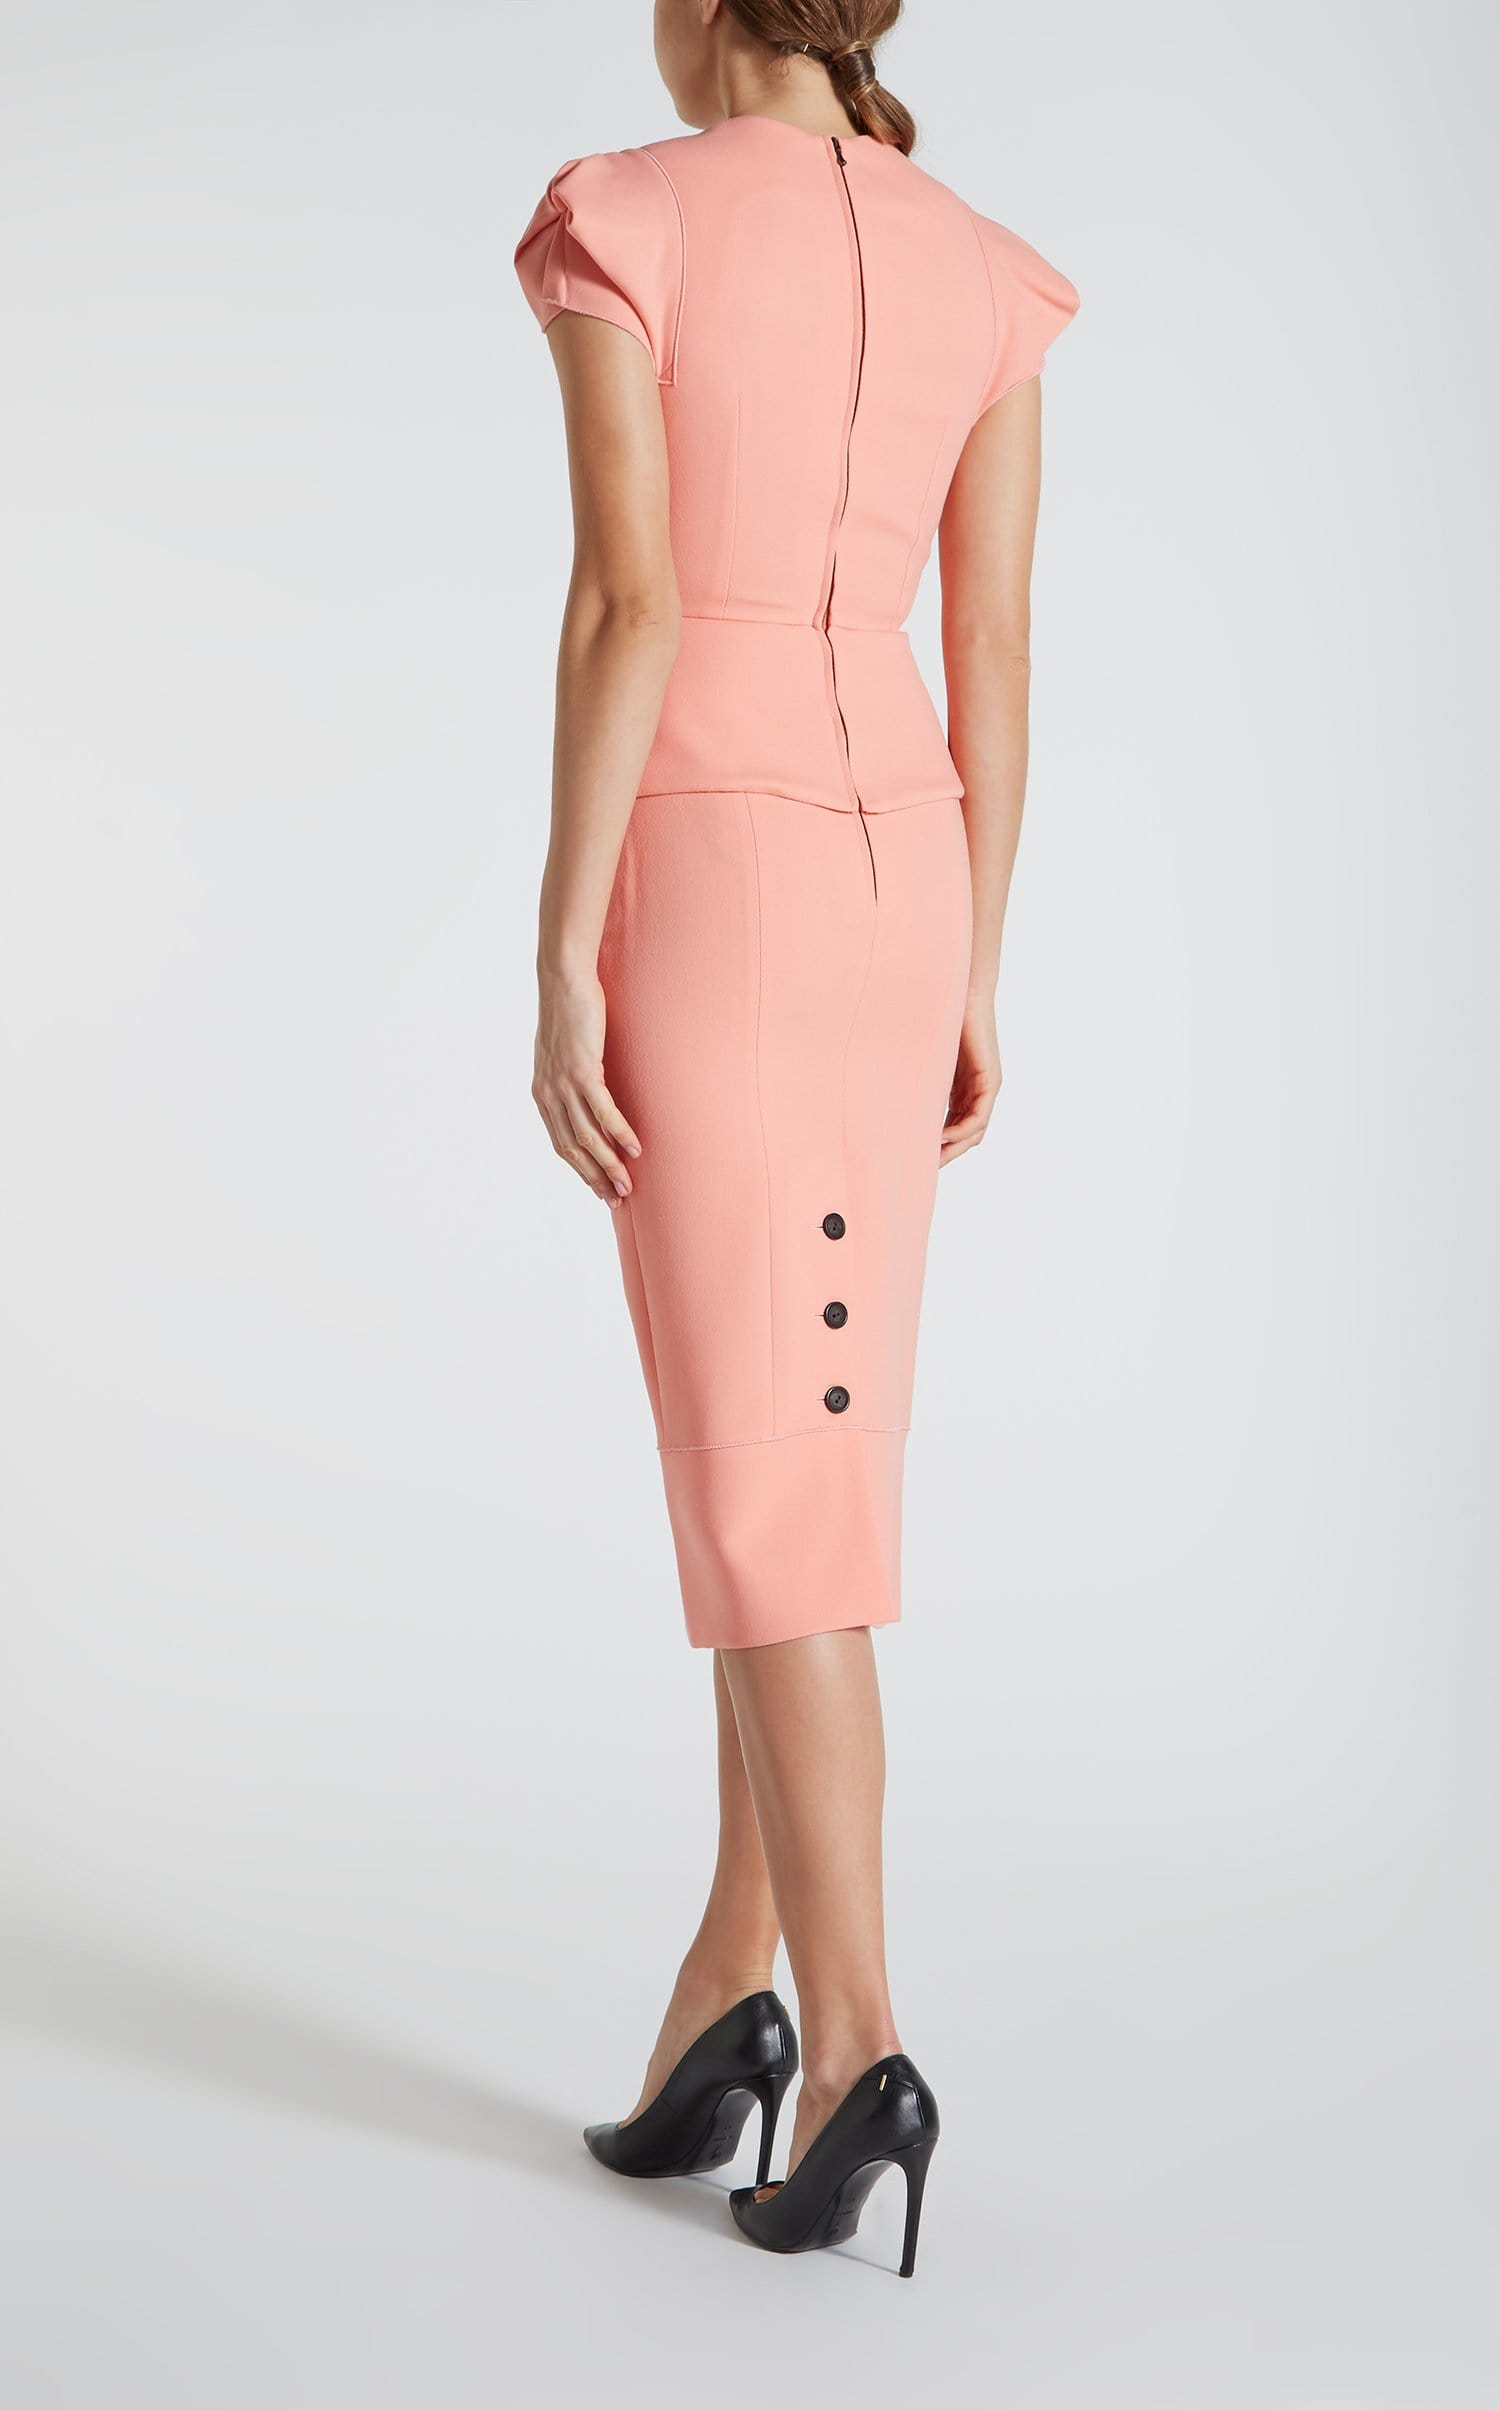 Galaxy Top In Antique Rose from Roland Mouret